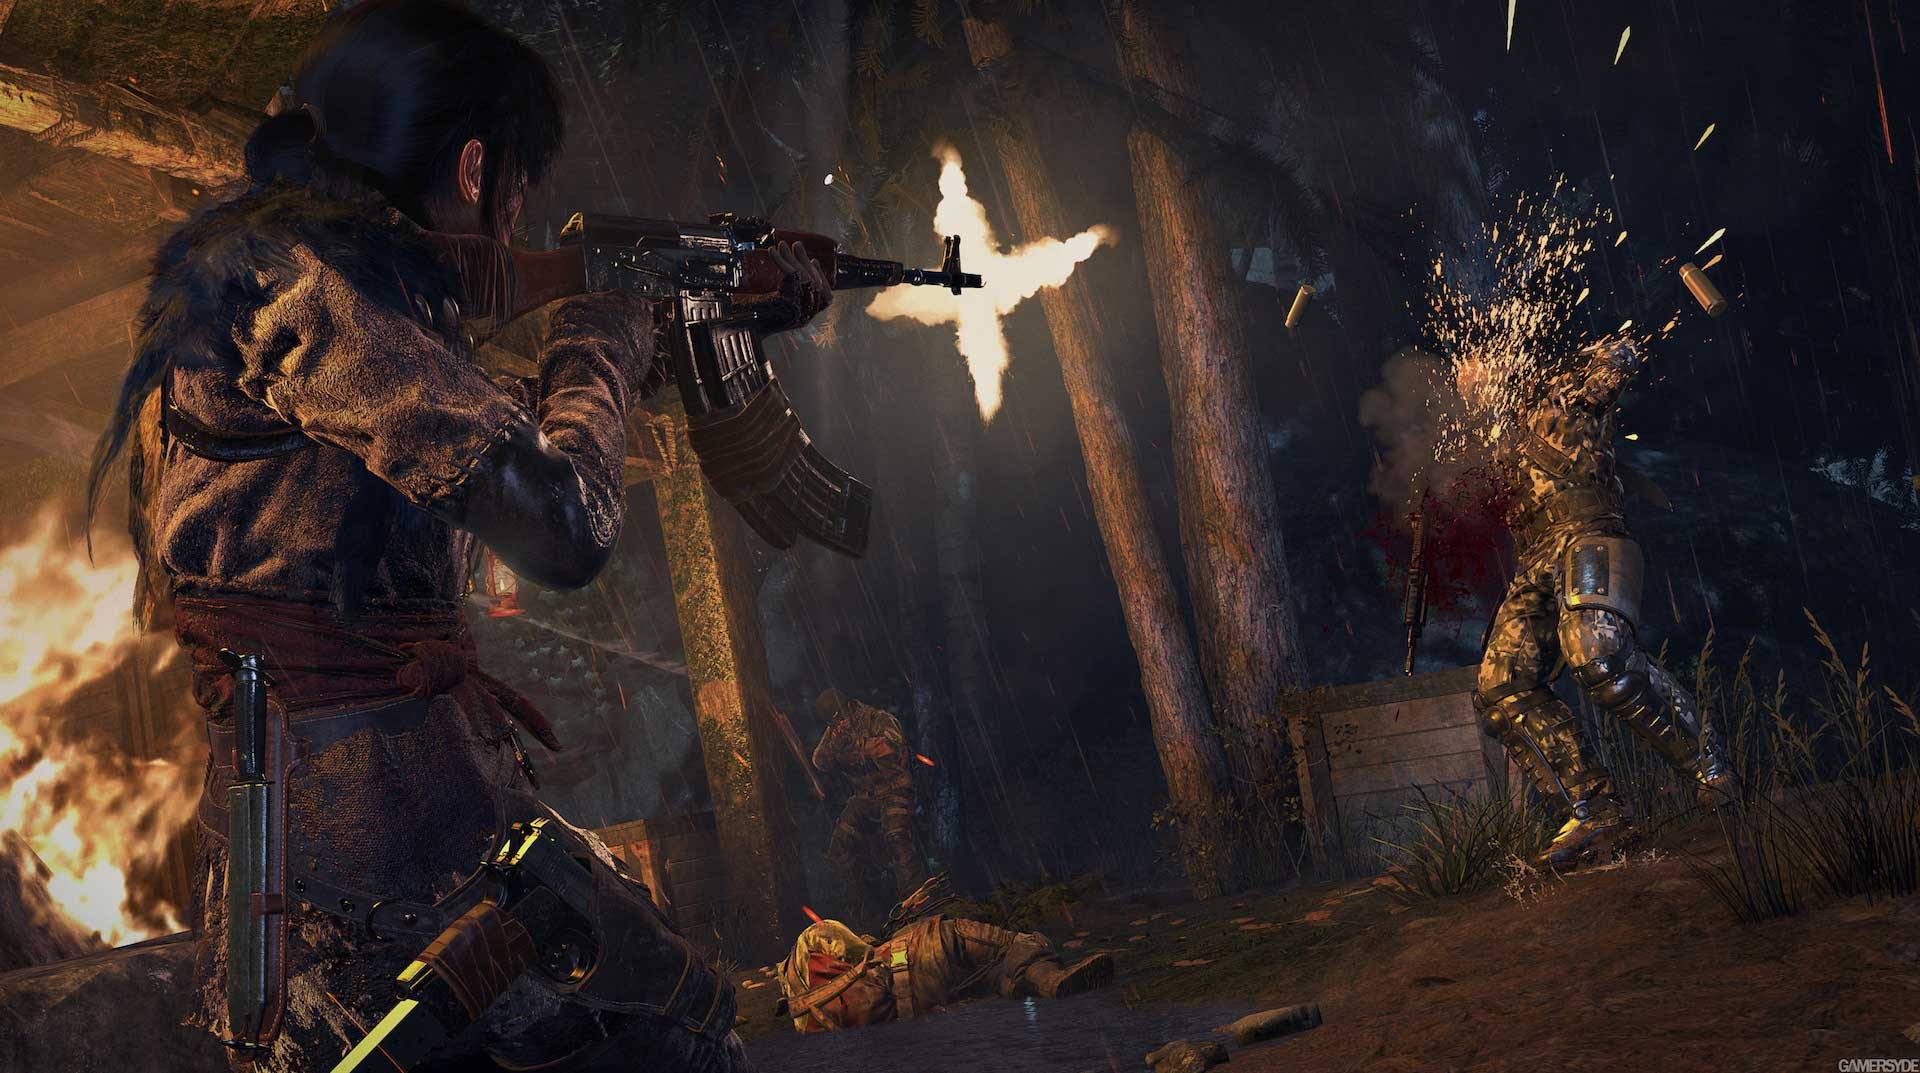 The cards give you the option to make those modes either easier or harder. Enjoy these Rise of the Tomb Raider 20 Year Celebration screens while you contemplate 100,000 ...